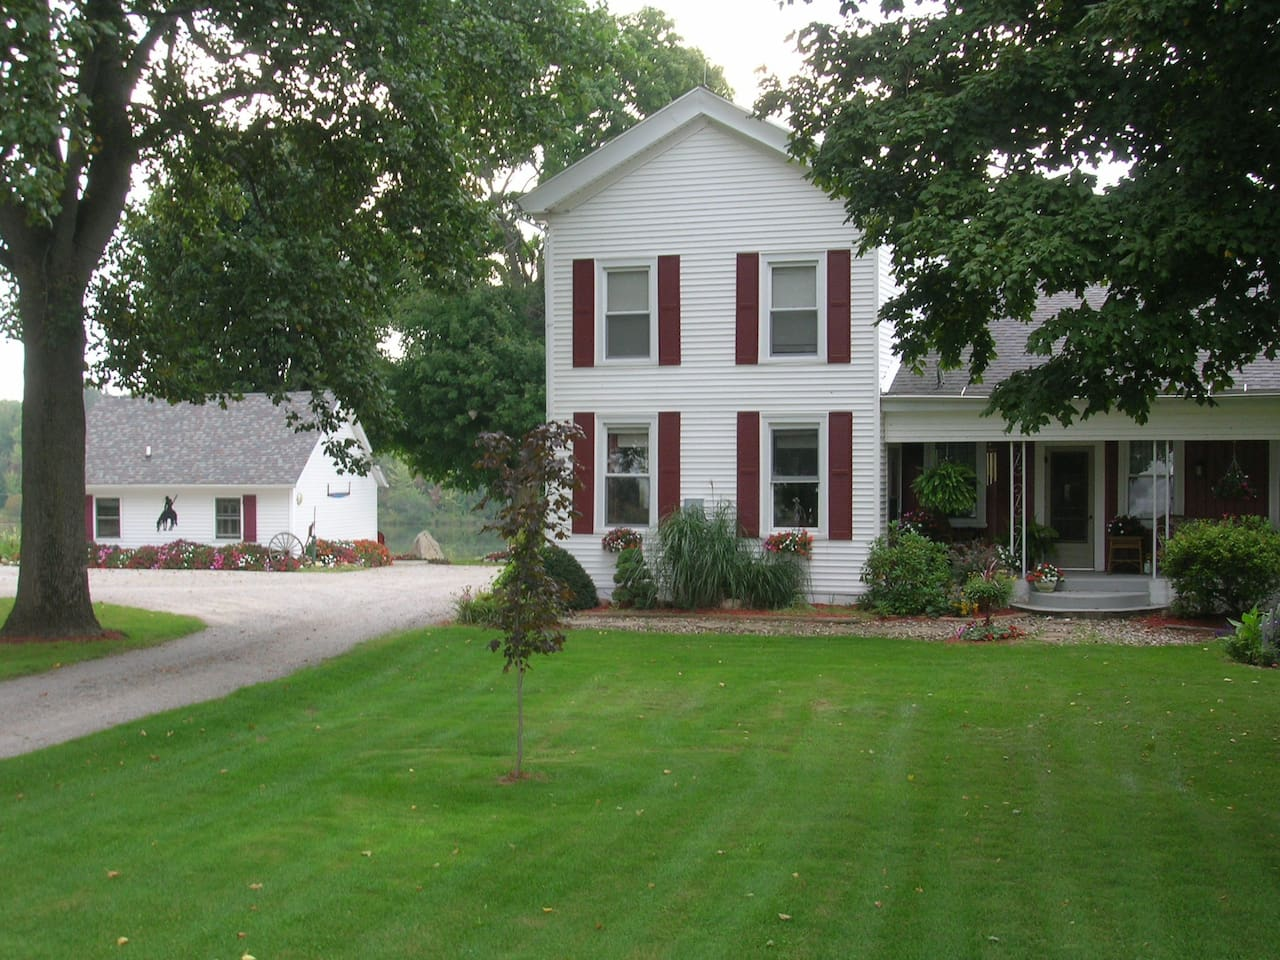 Your 3 room Bunkhouse B&B is on the left. You are welcomed into our 180 year home for breakfast. Or breakfast can be delivered to the Bunkhouse.